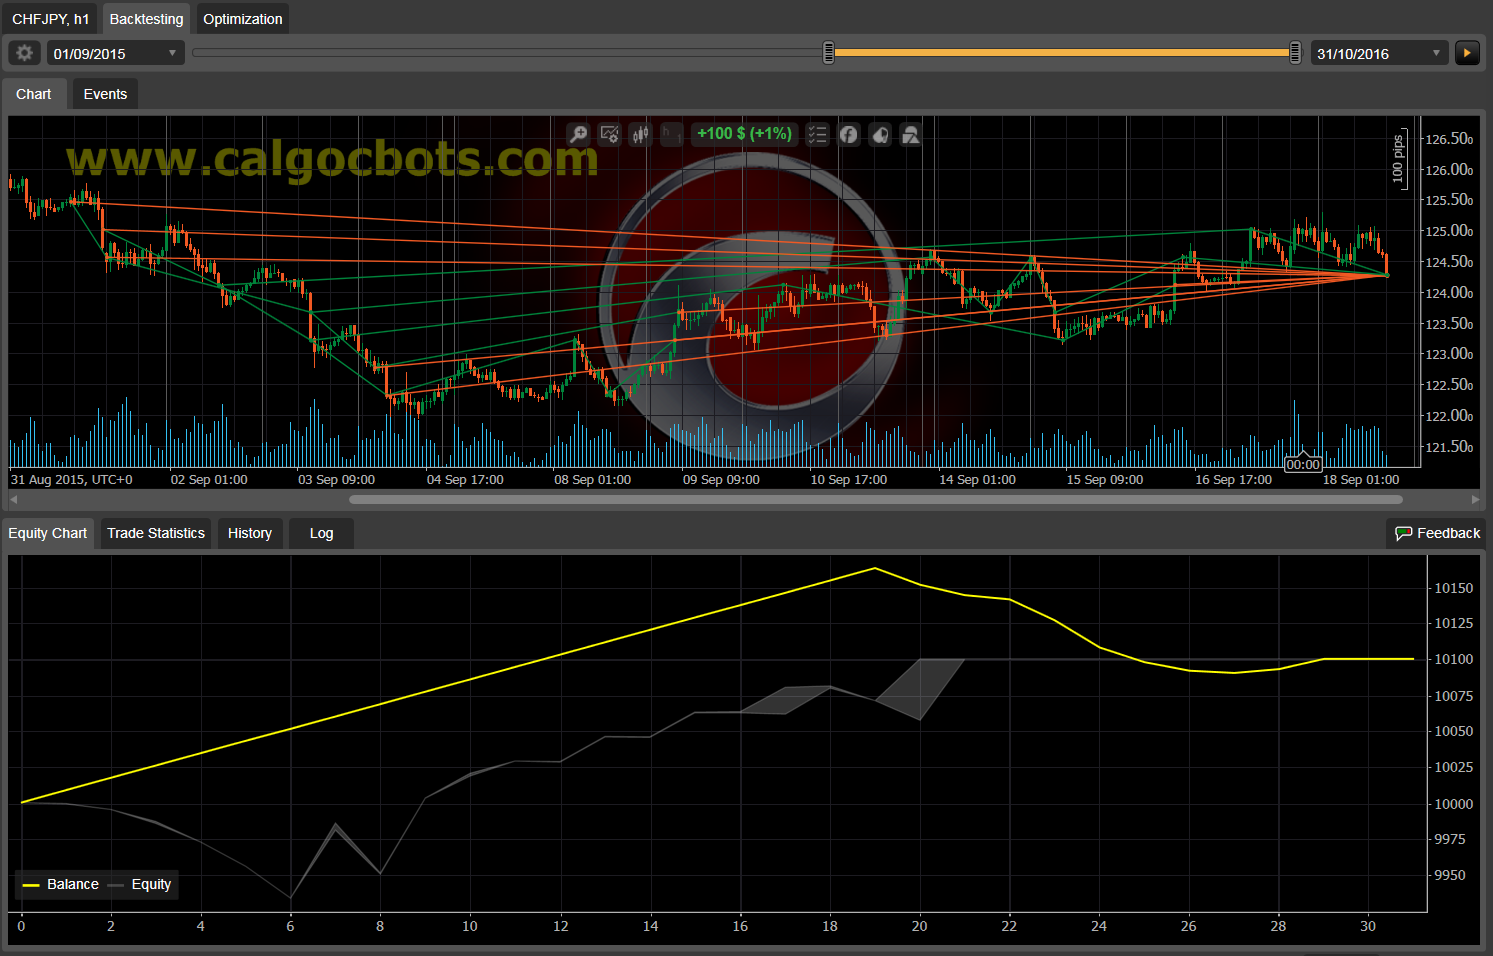 Dual Grid Hedge CHF JPY 1h cAlgo cBots cTrader 1k 100 45 90 - 02 a